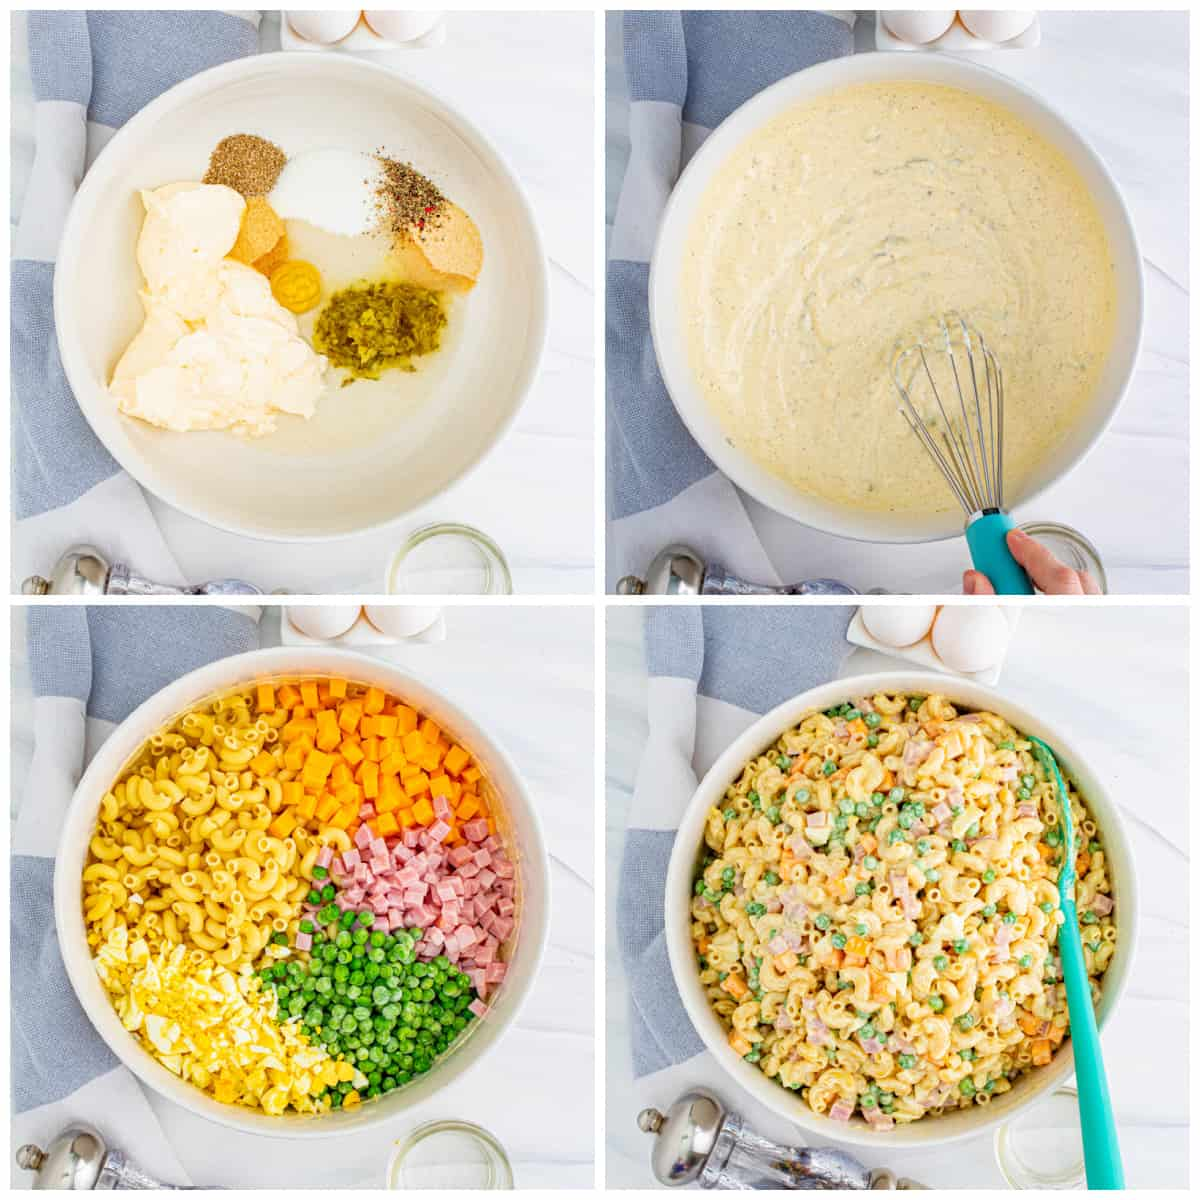 Step by step photos on how to make a Macaroni Salad Recipe